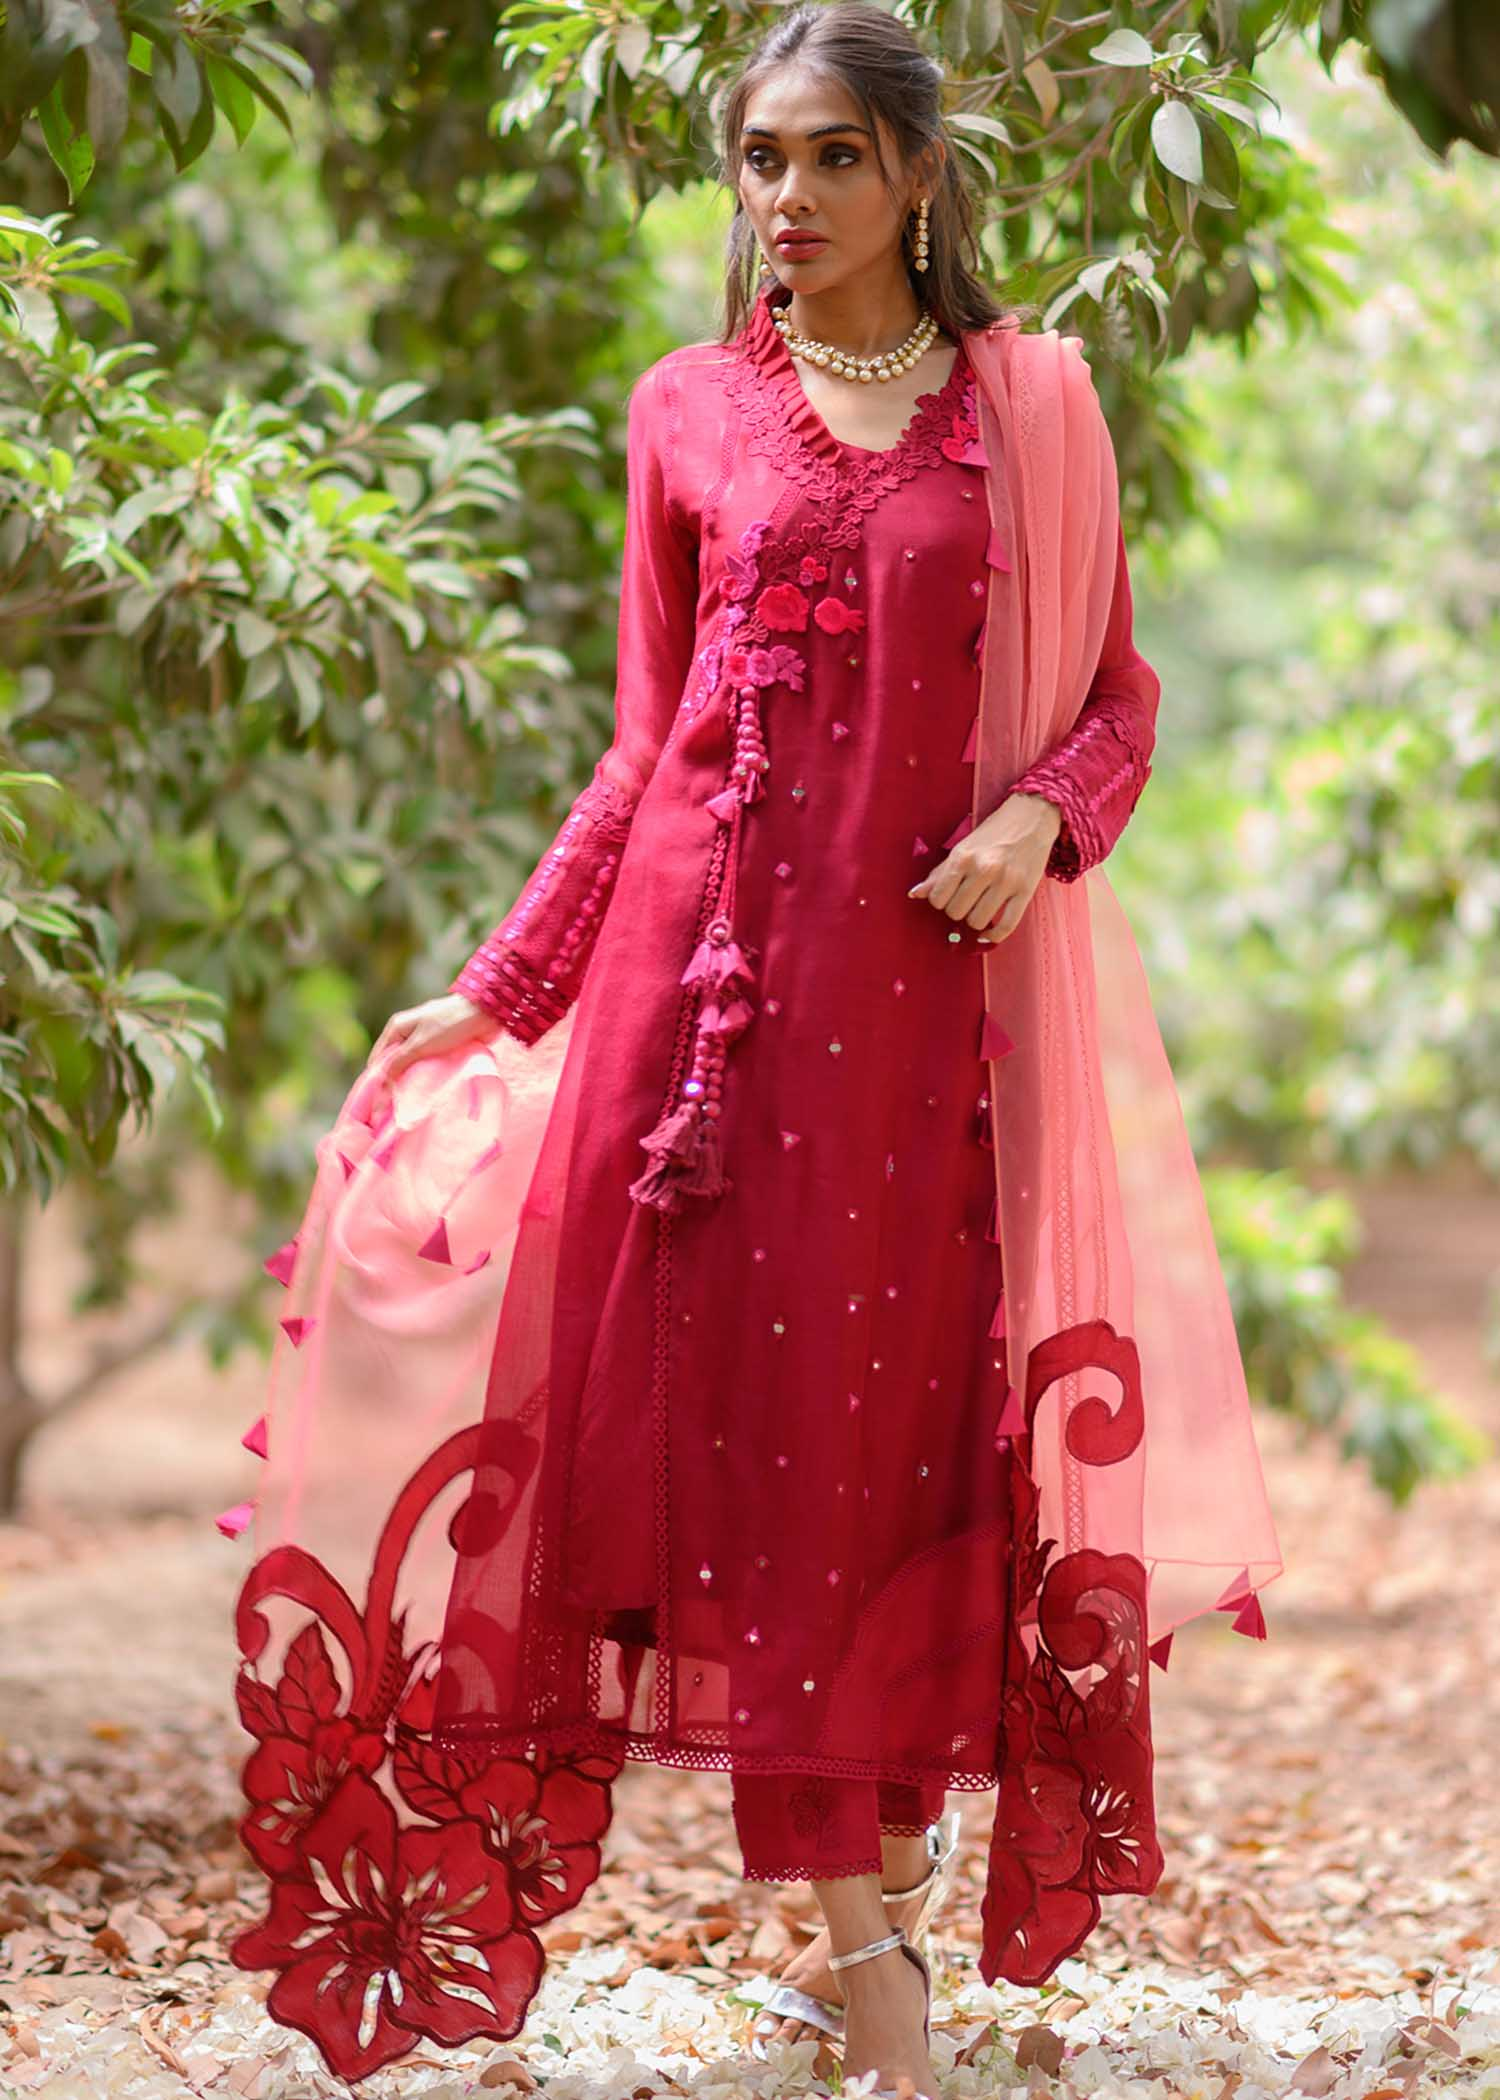 Long embroidered angarkha with statement dupatta